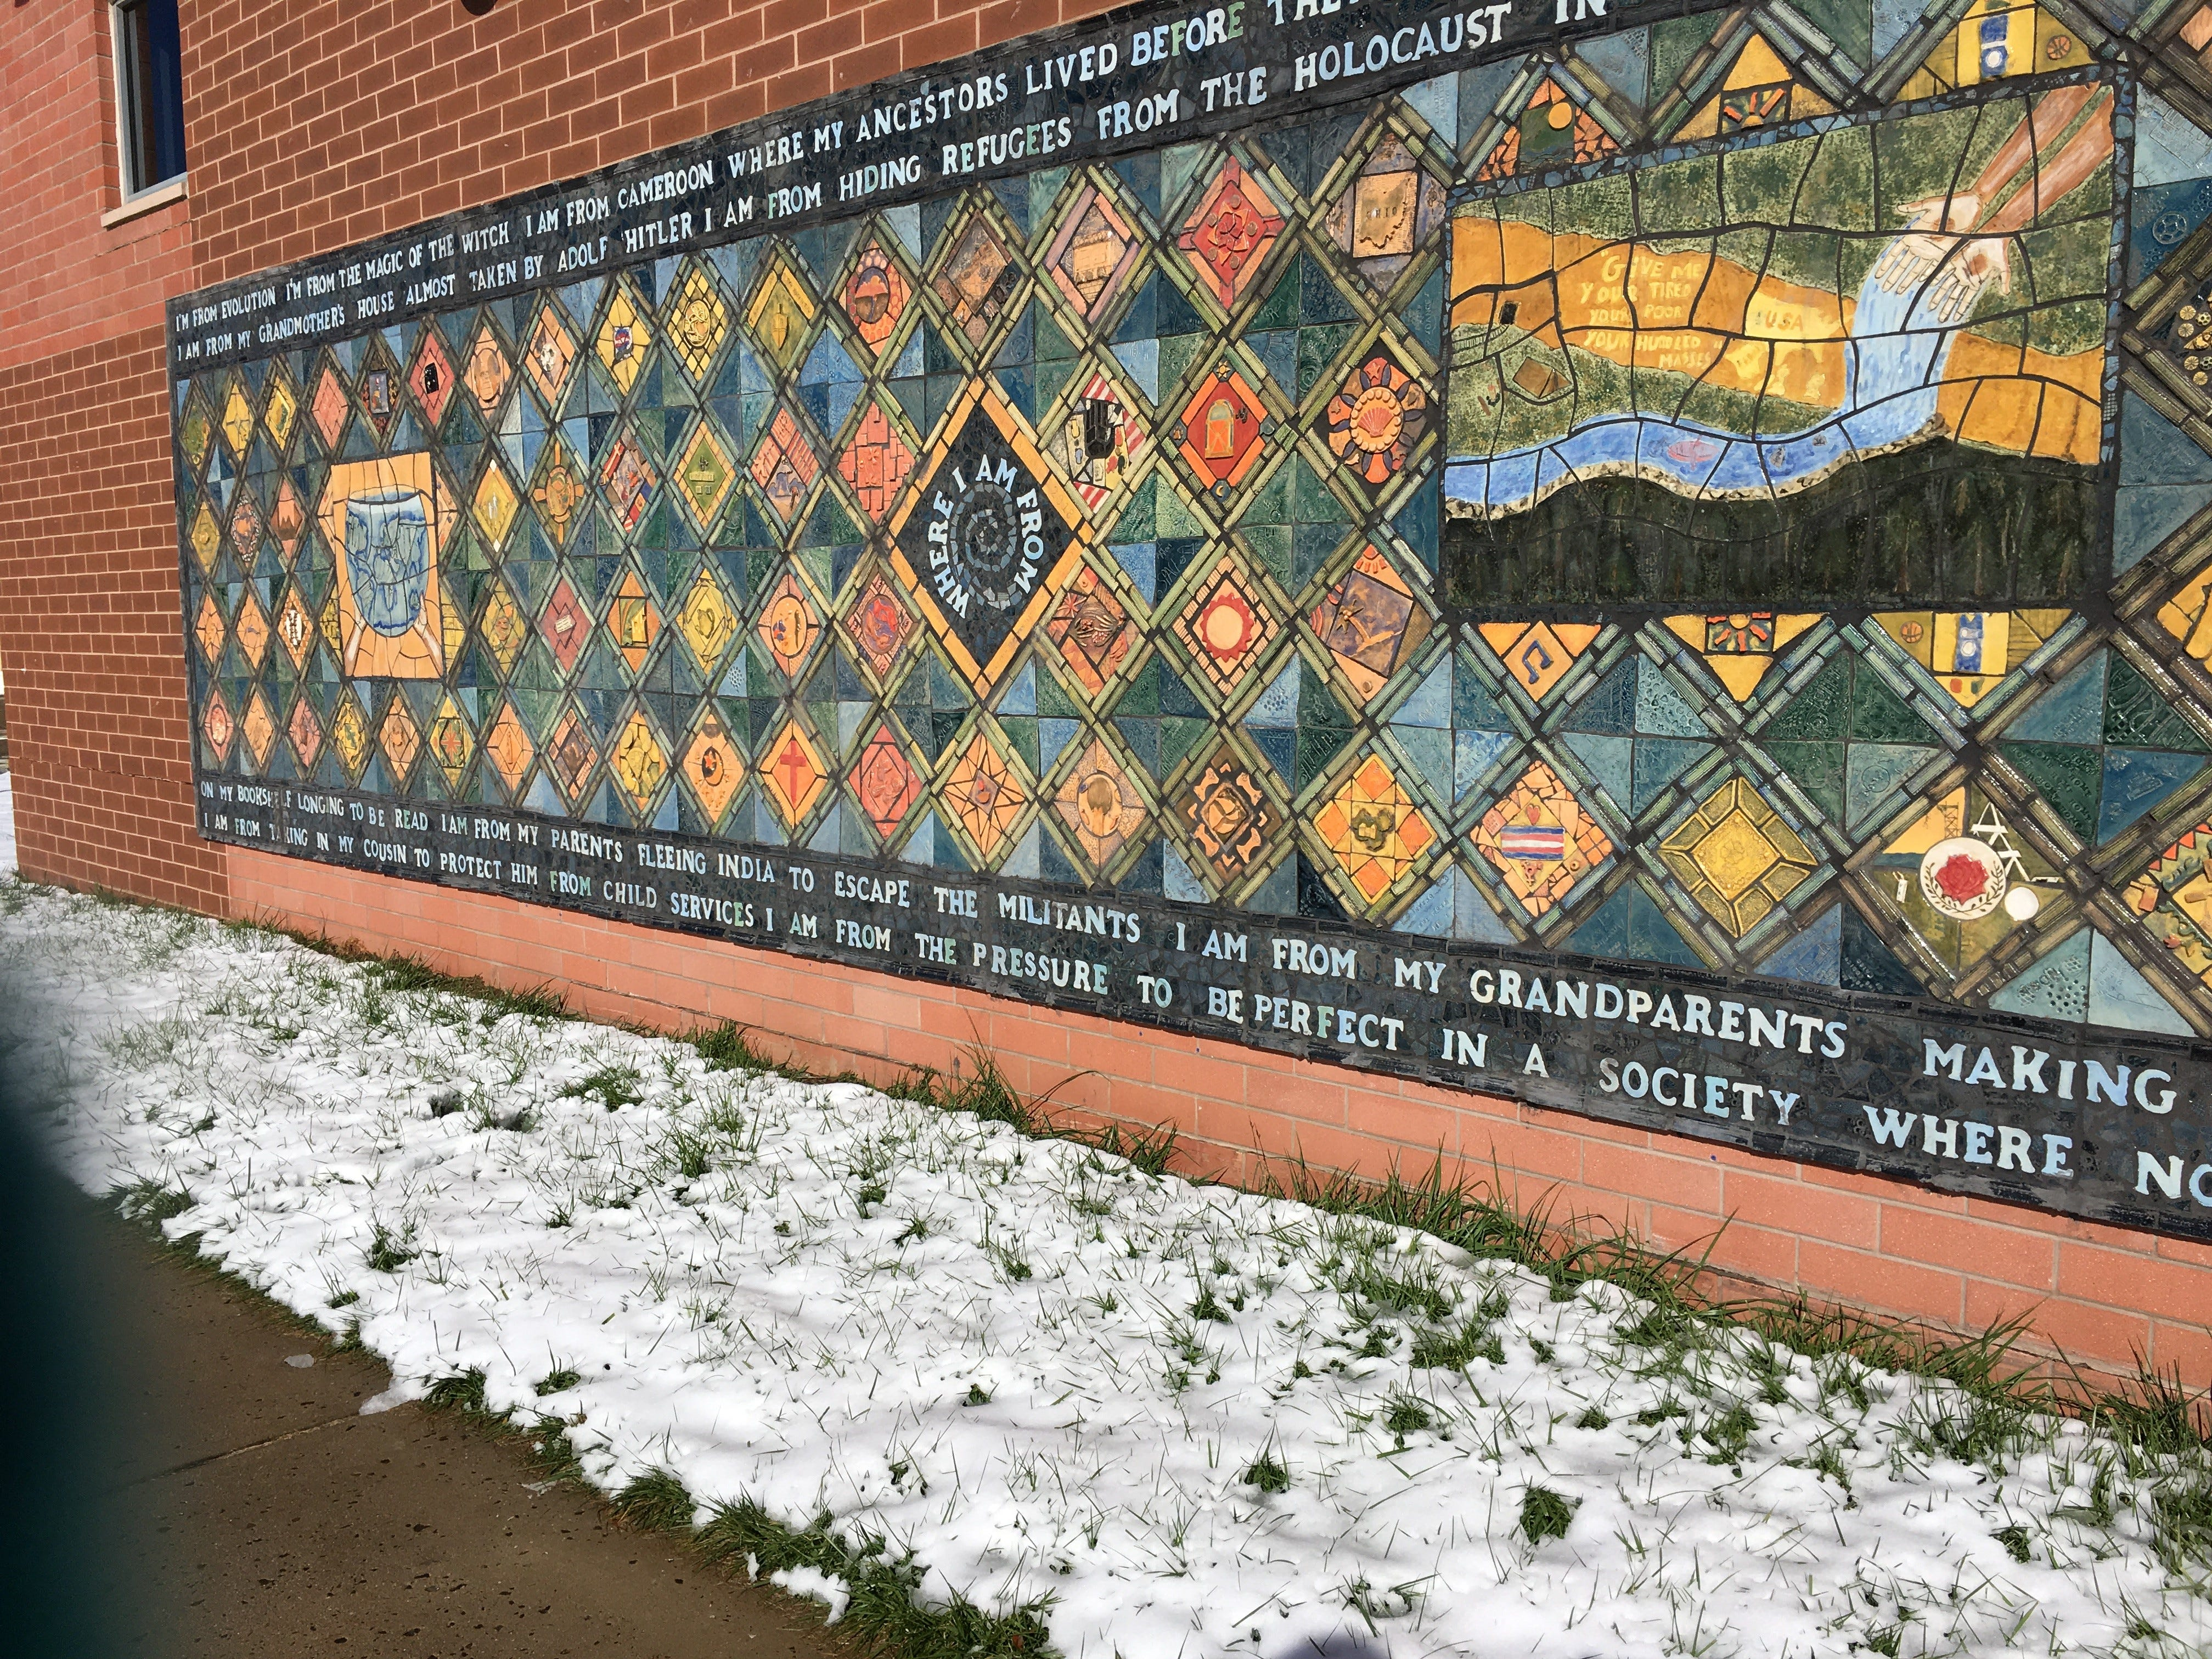 This mural represents the heartfelt messages of Montgomery students and community members to find unity in diversity. It was created last spring and dedicated in June.